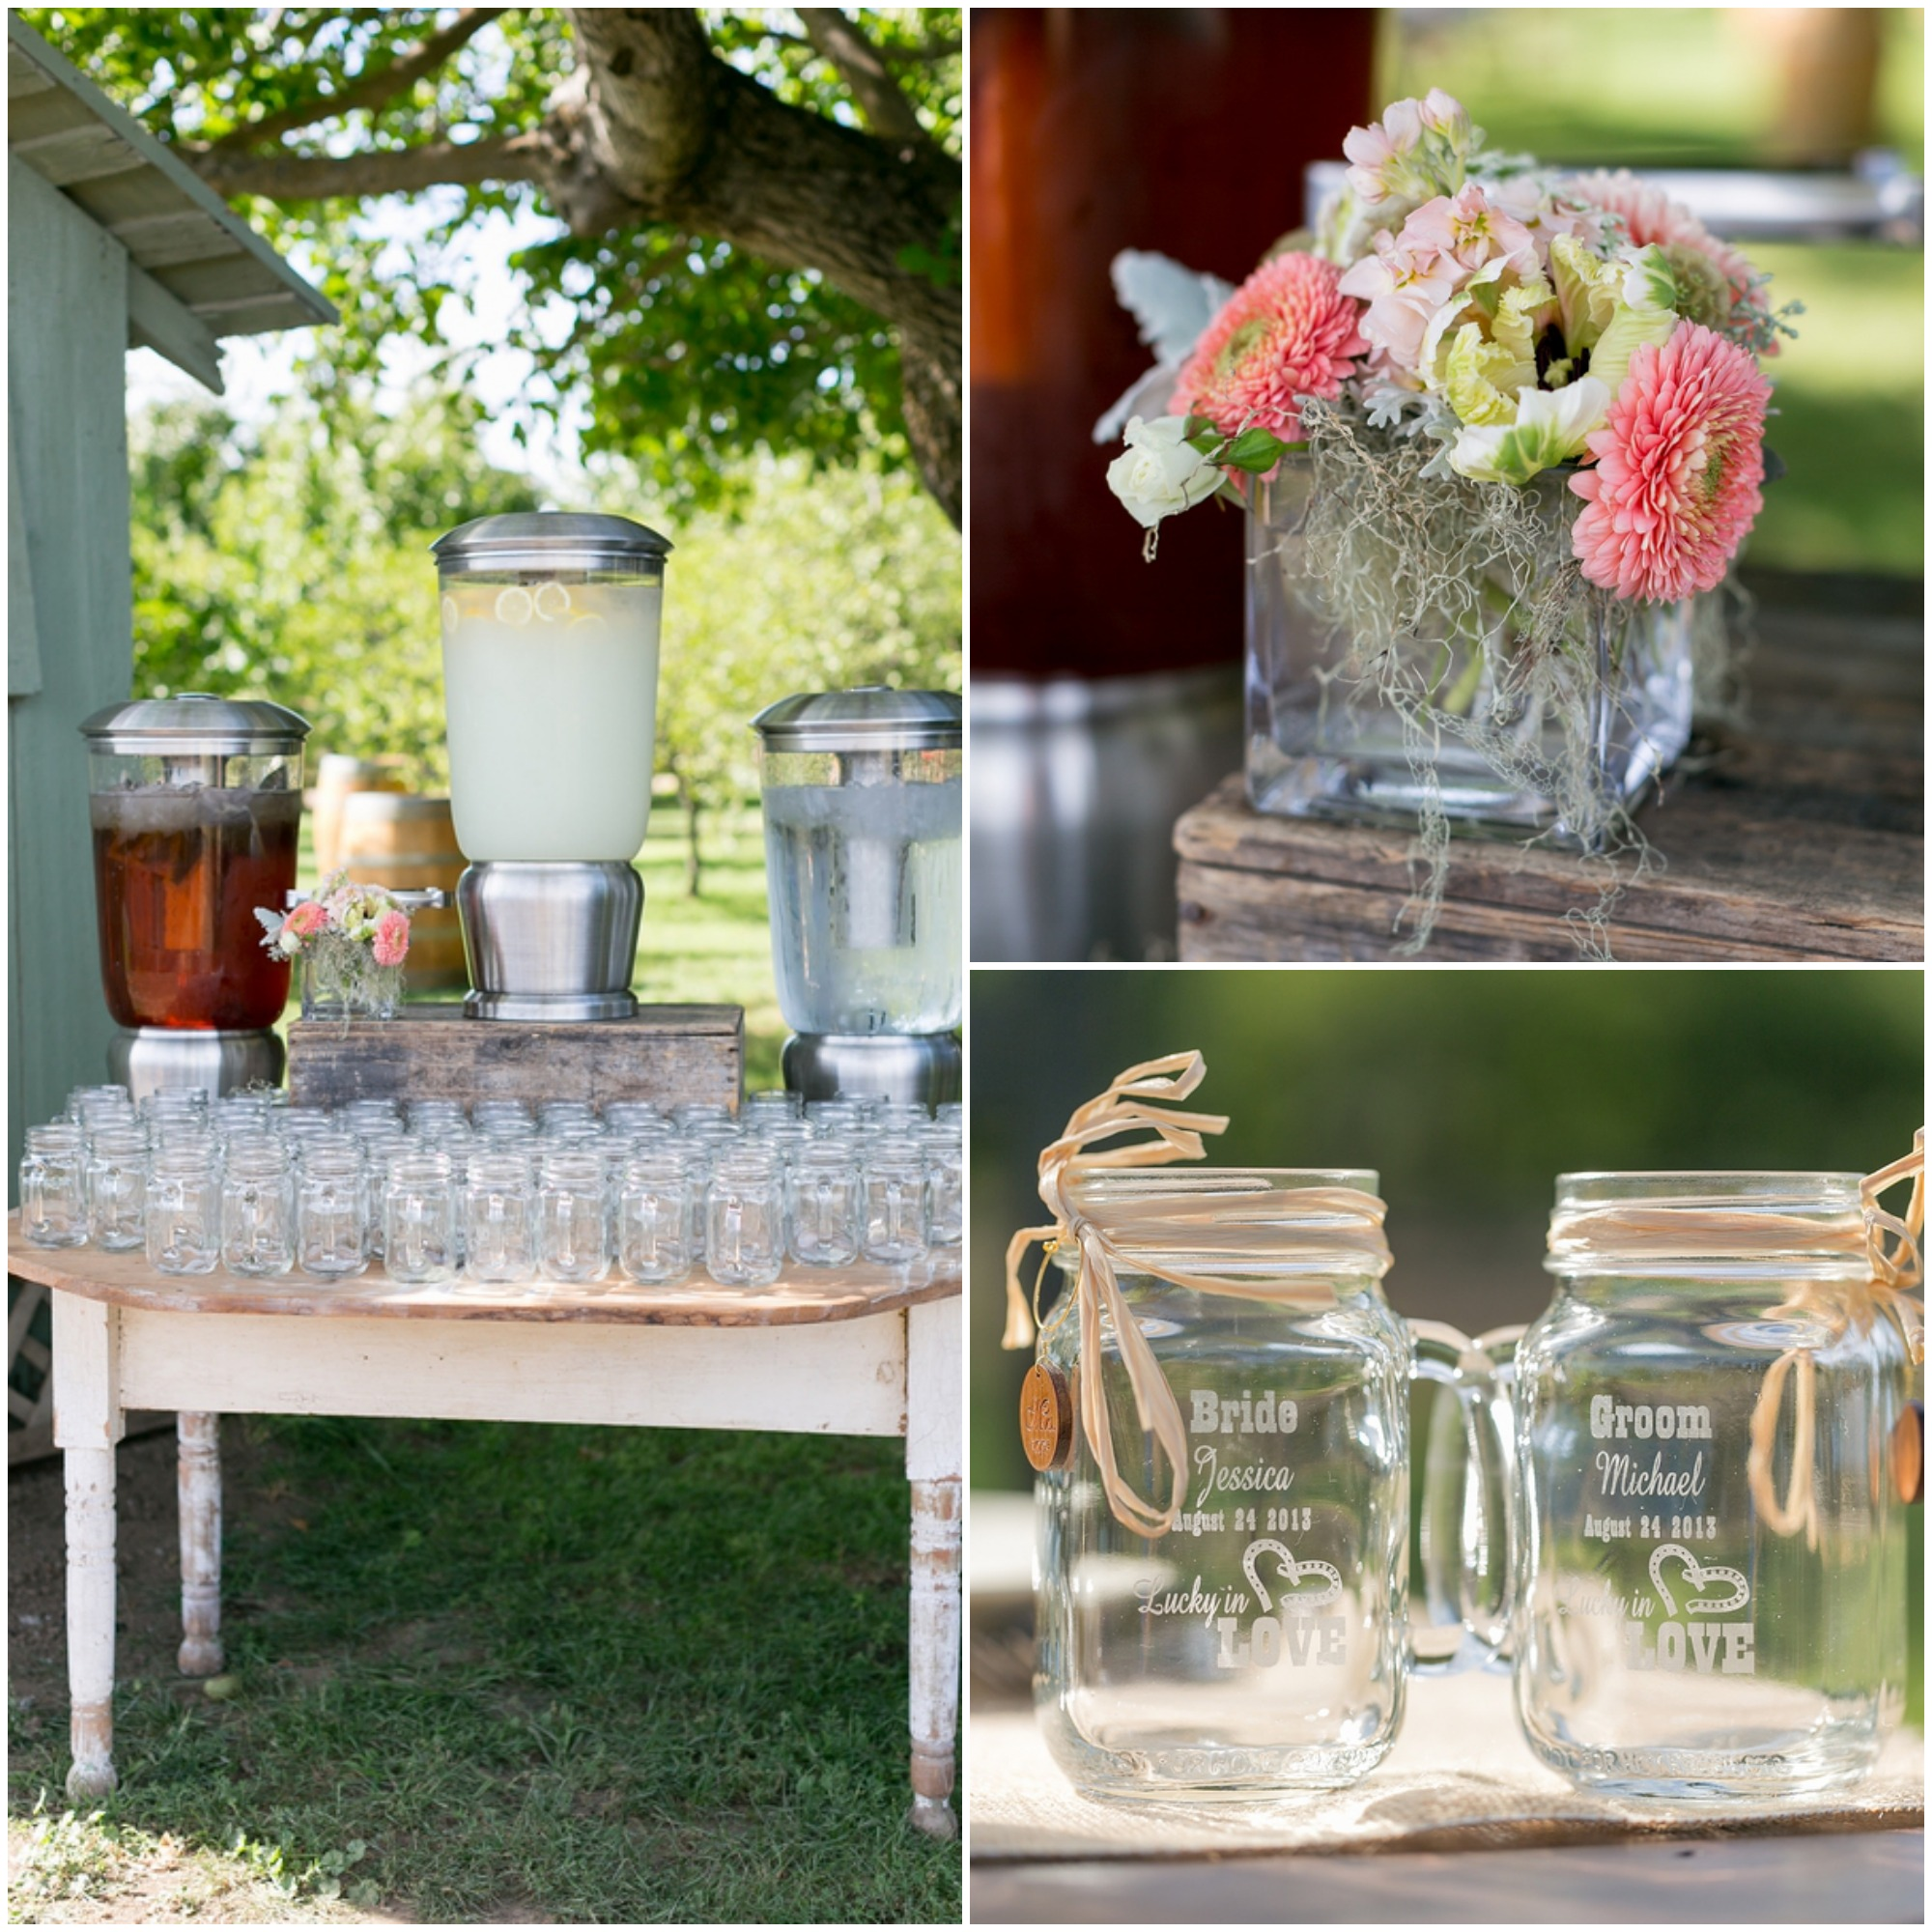 A Surprise Wedding At The Bride S Rose Farm In California: Rustic Wedding Chic